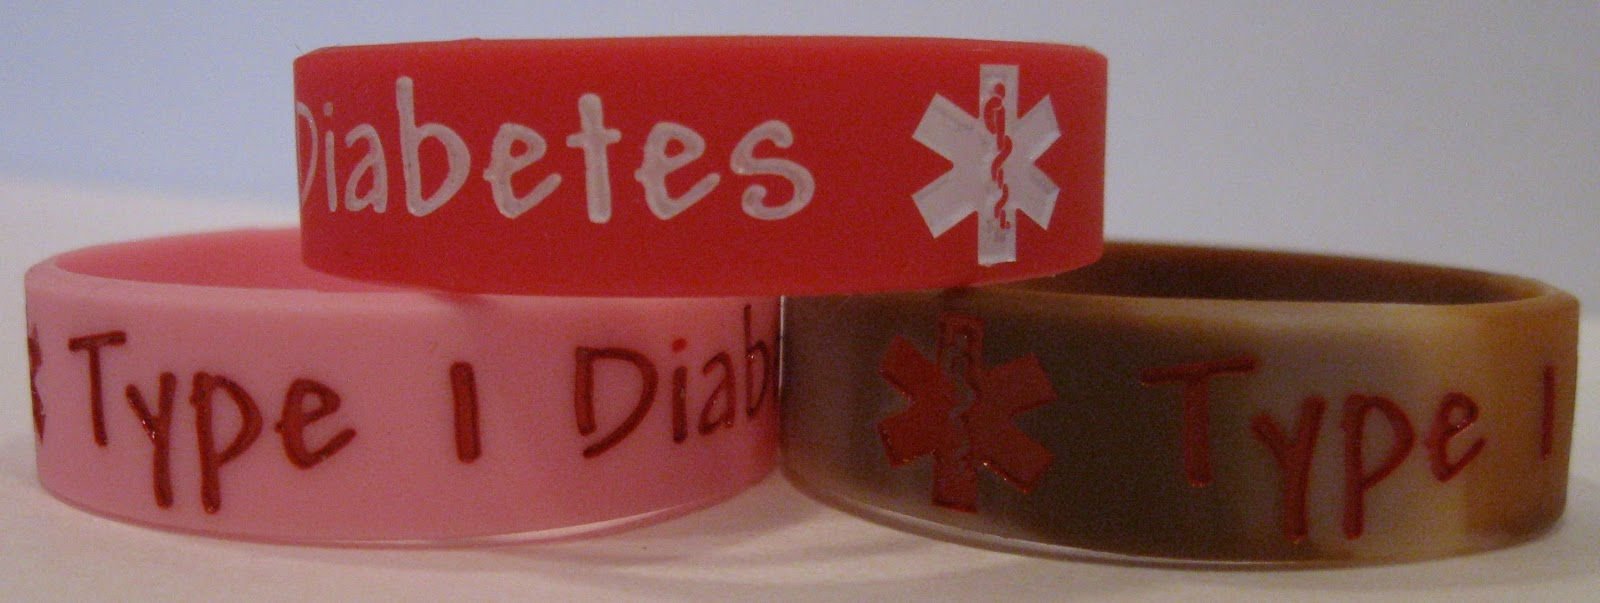 personal care diabetic alert insulin bracelet dependent various dp diabetes amazon colors health pc medical type com